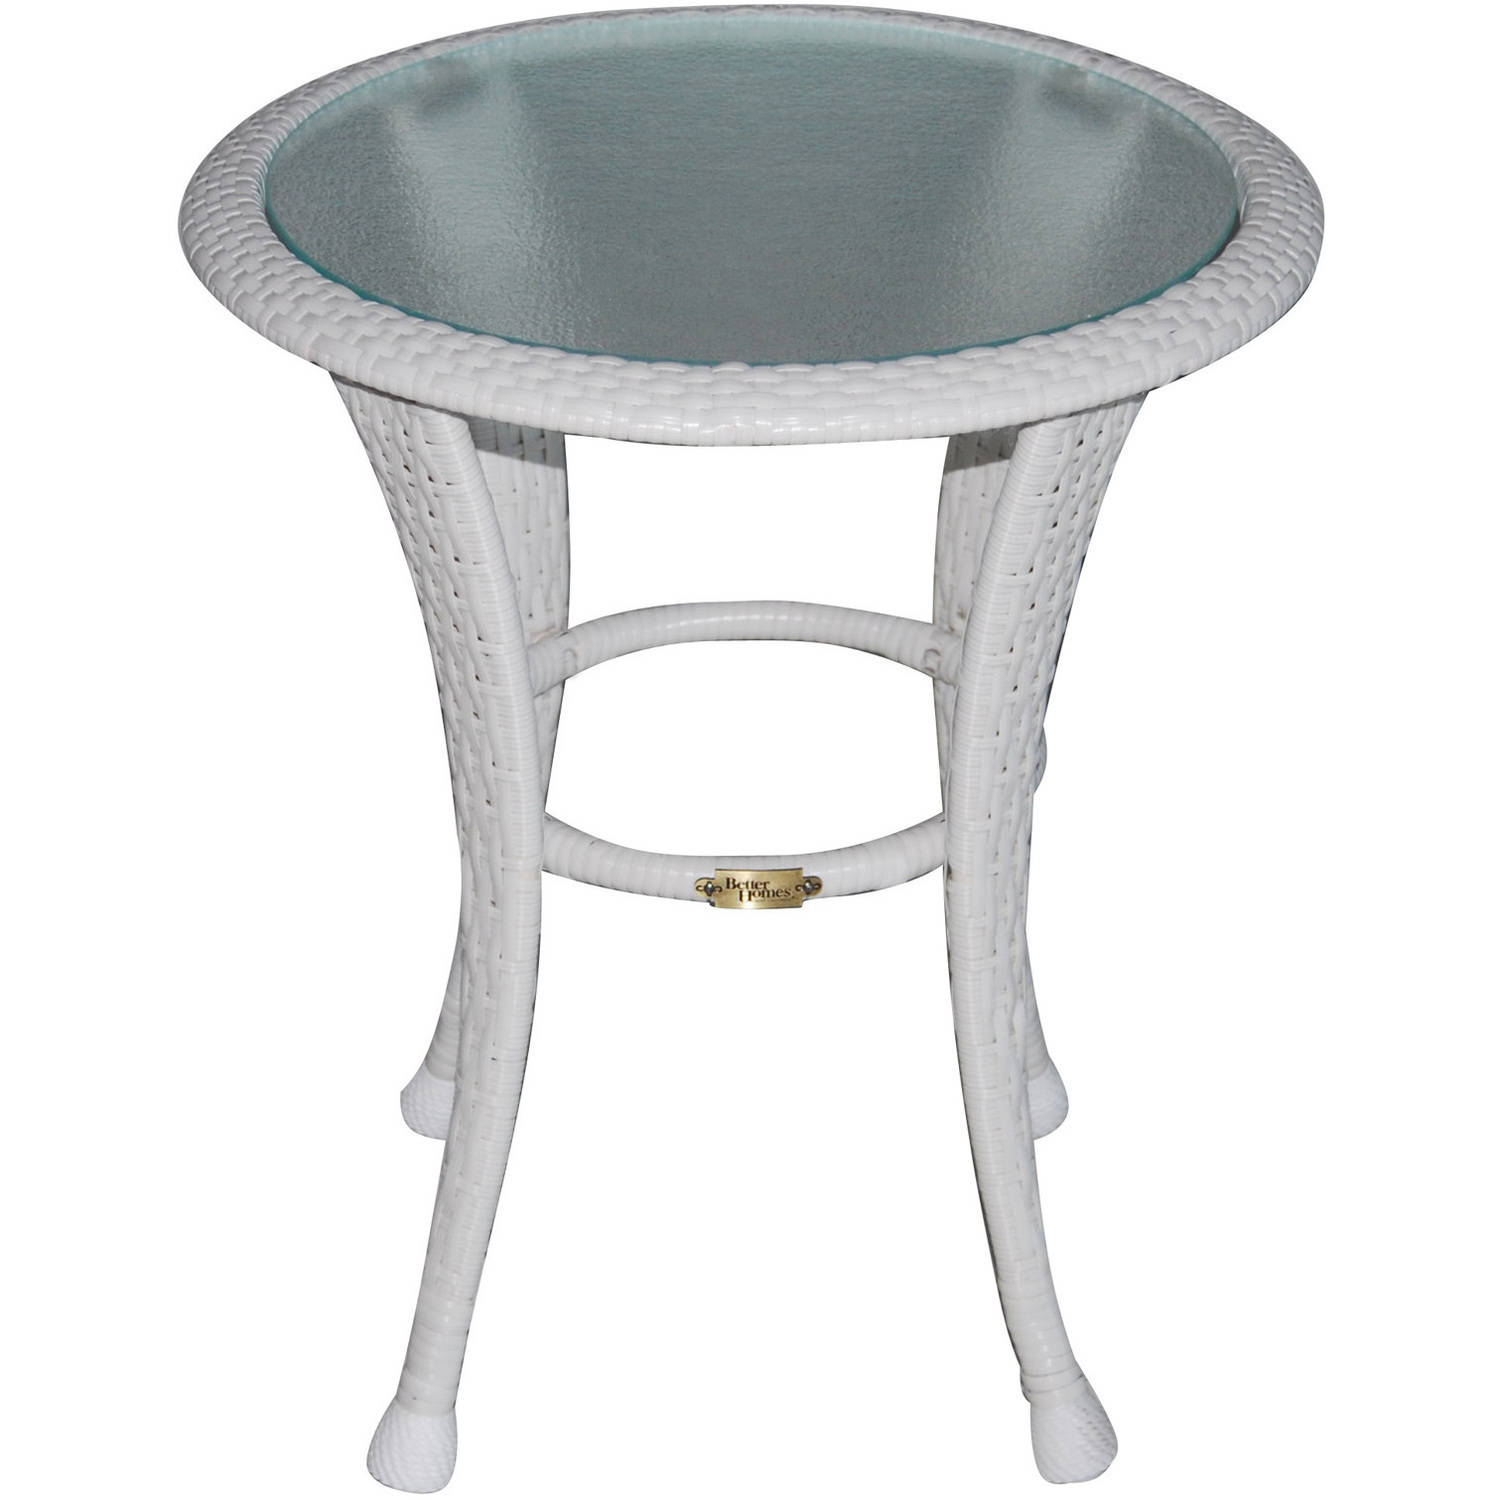 patio table patio furniture - walmart.com FABYGGJ